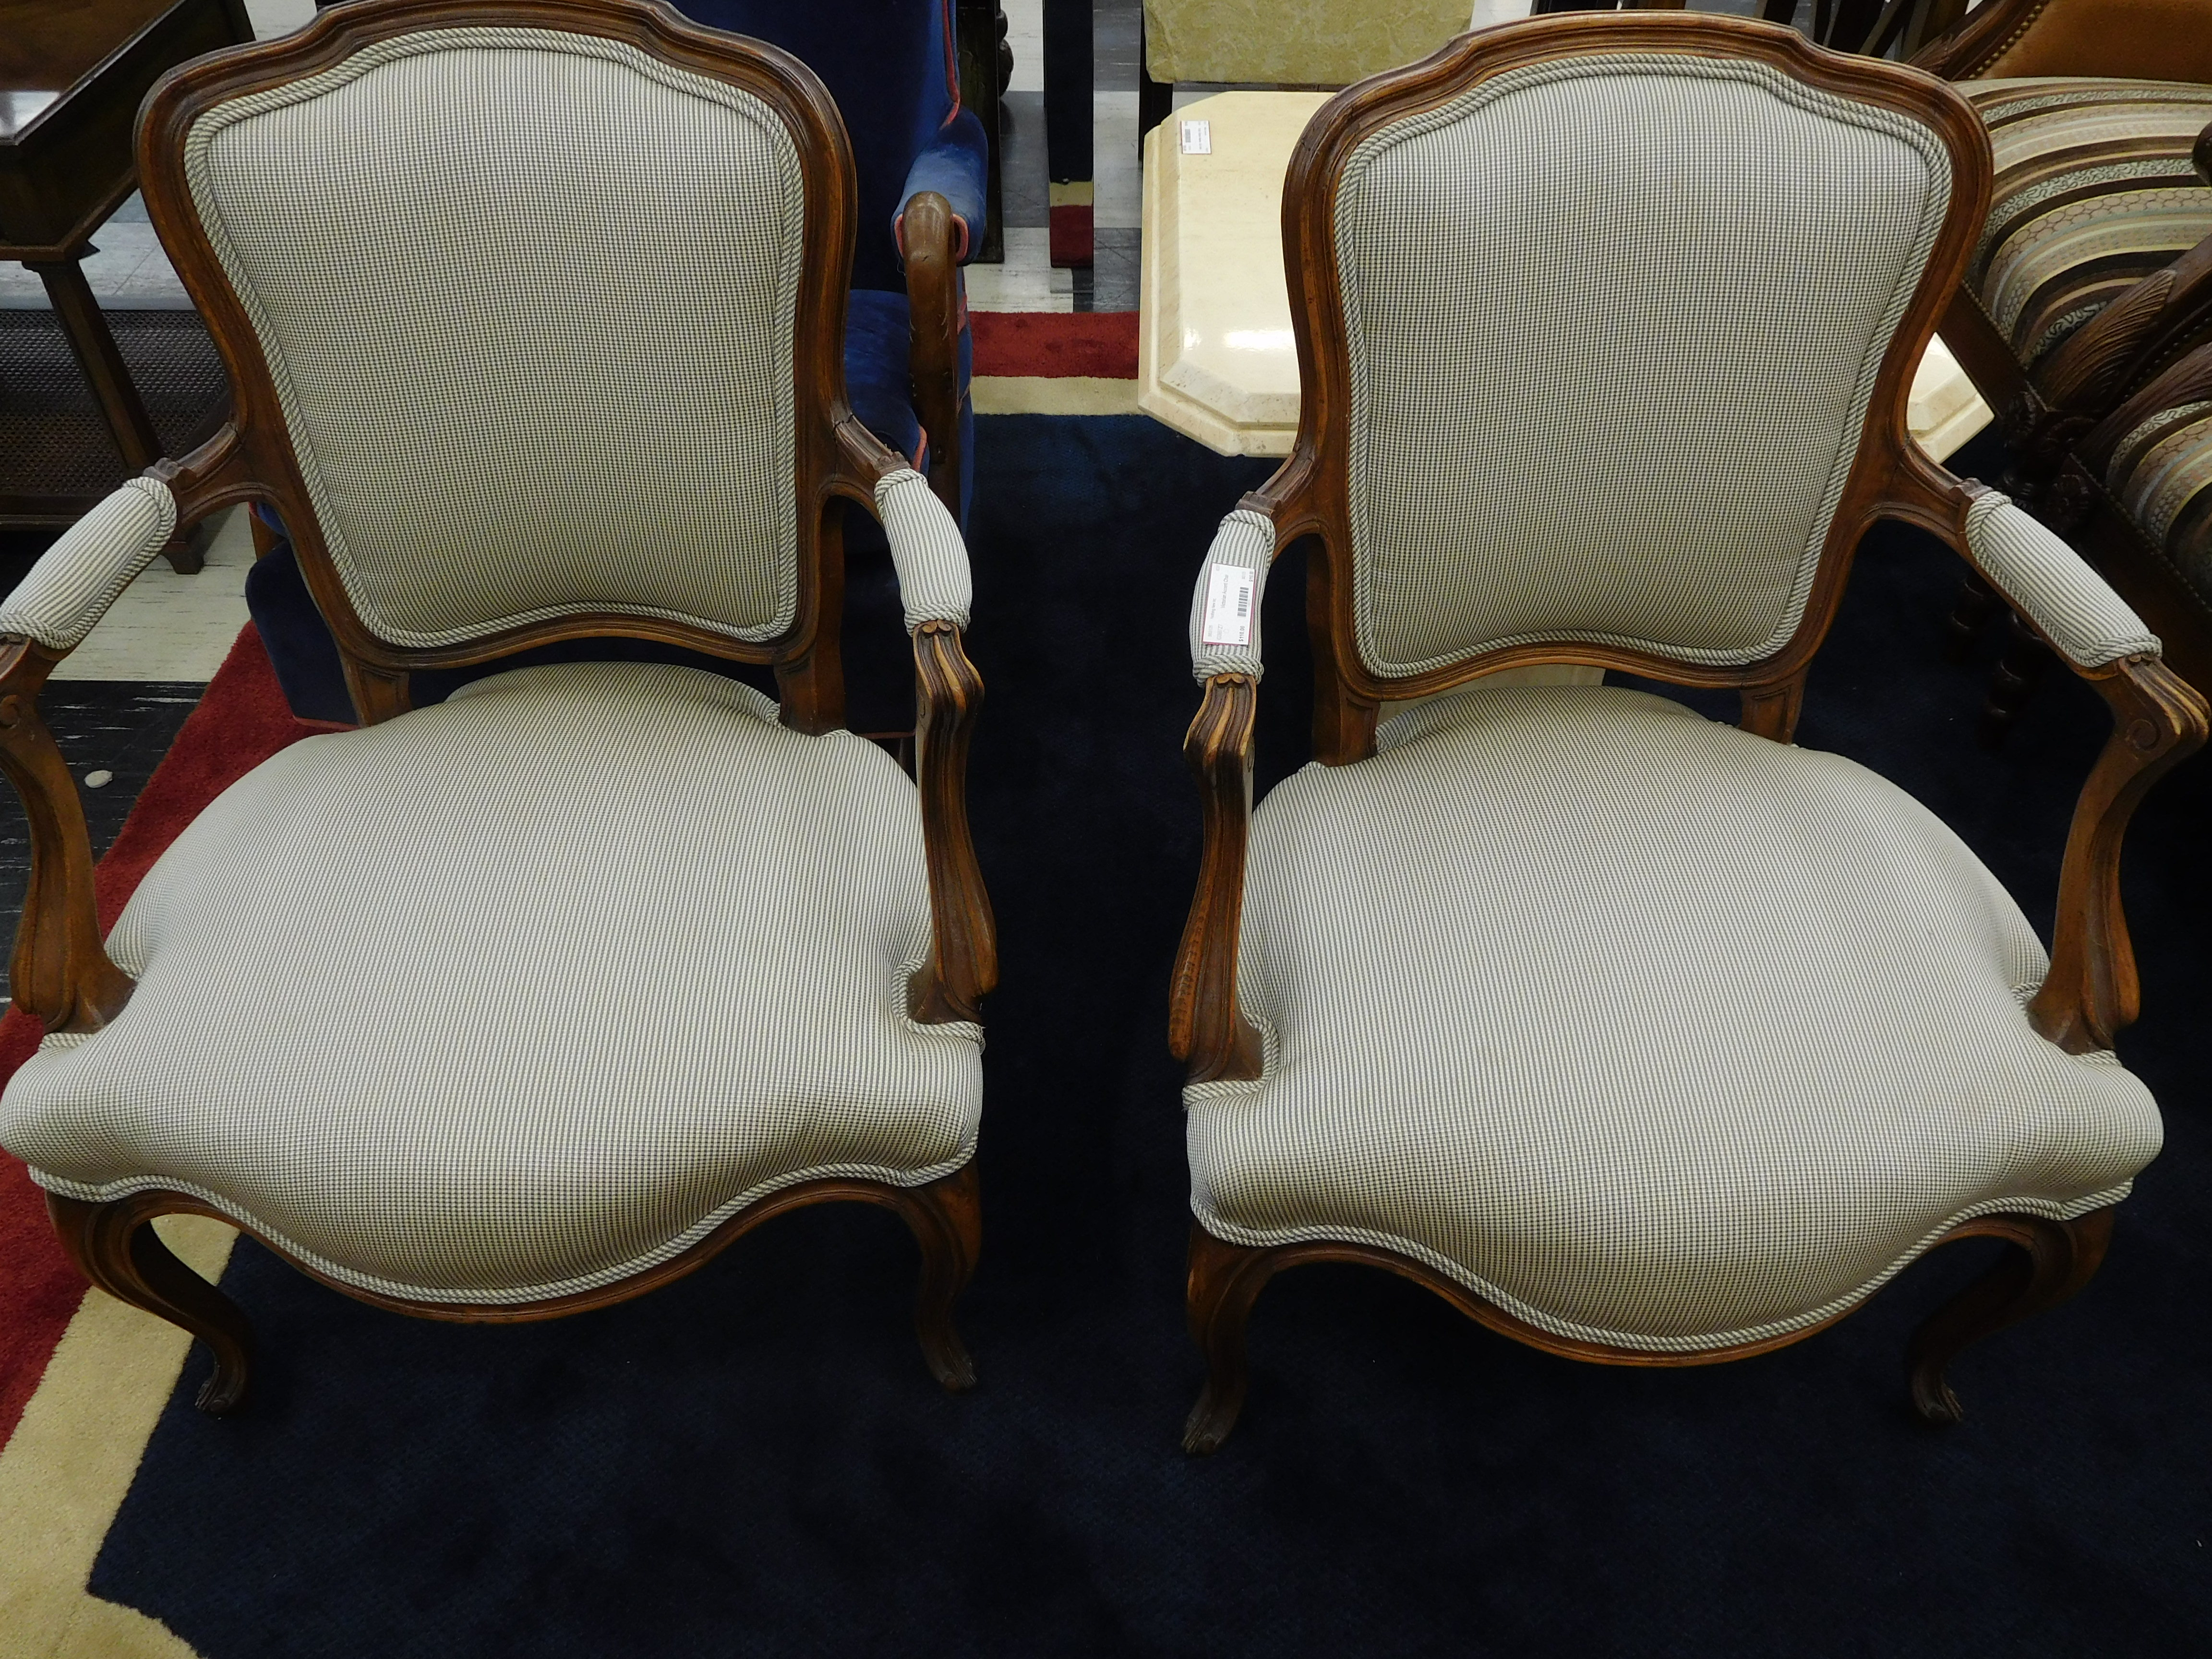 Victorian Accent Chair with White Upholstery